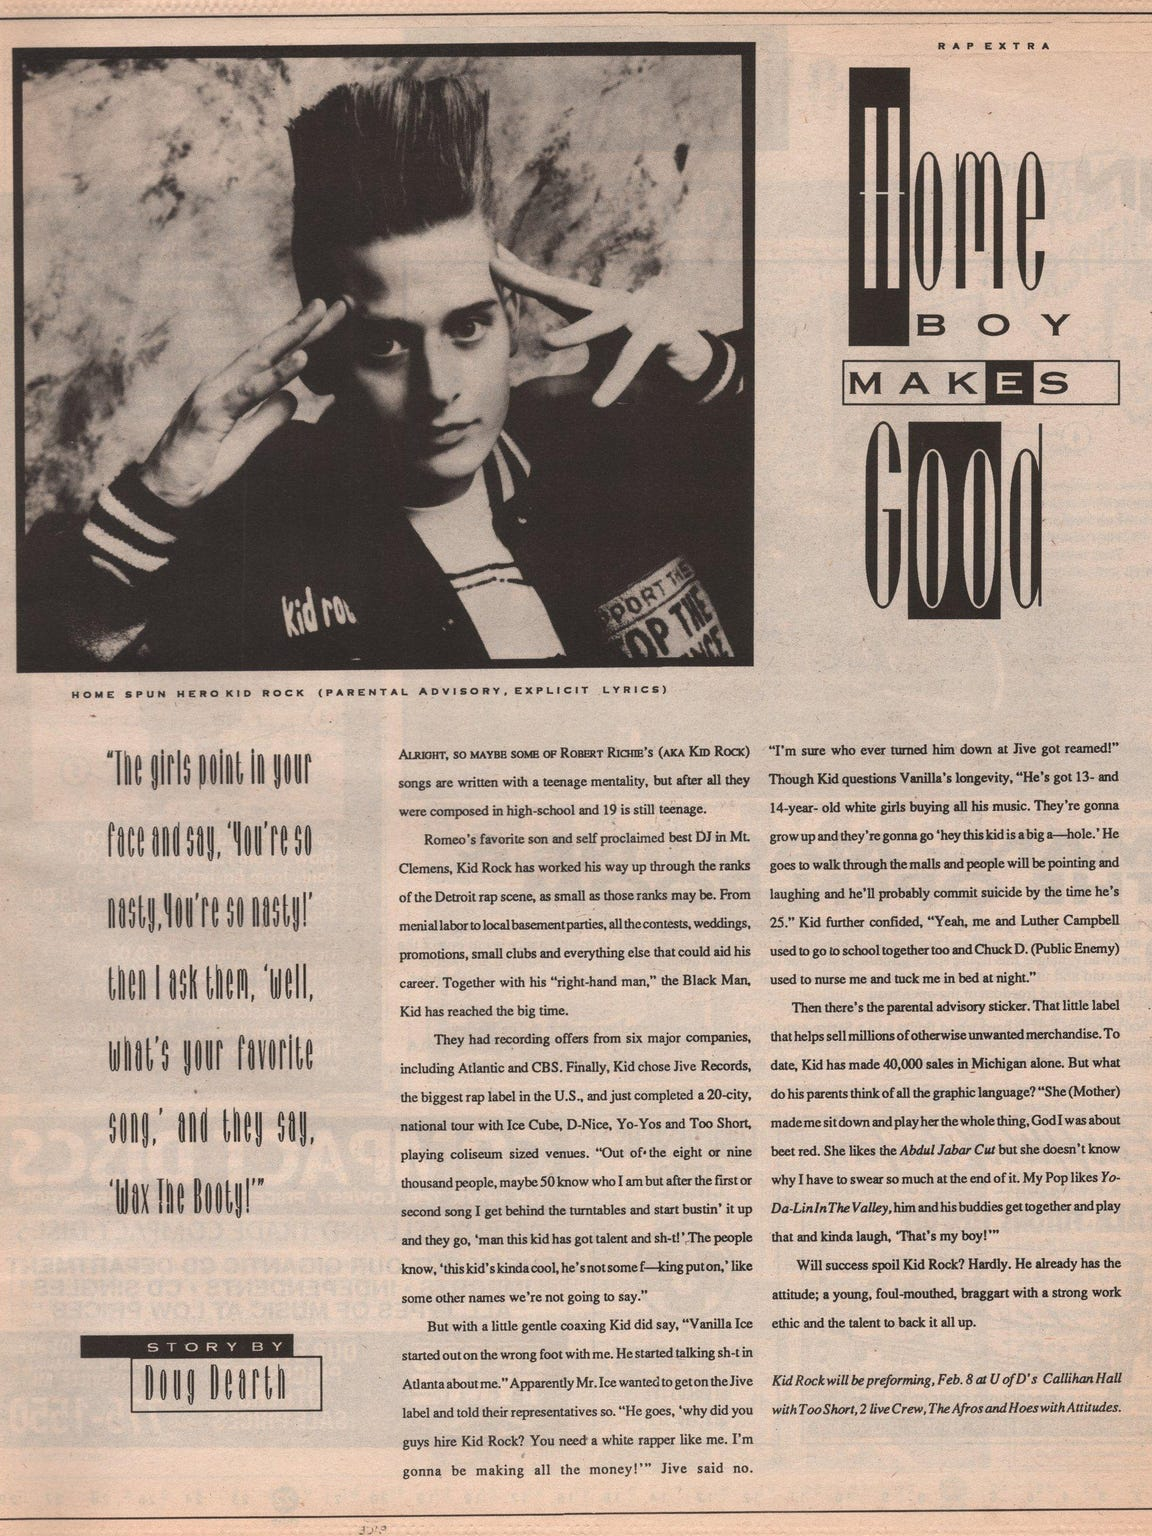 A feature on Kid Rock in a 1991 issue of Orbit, an